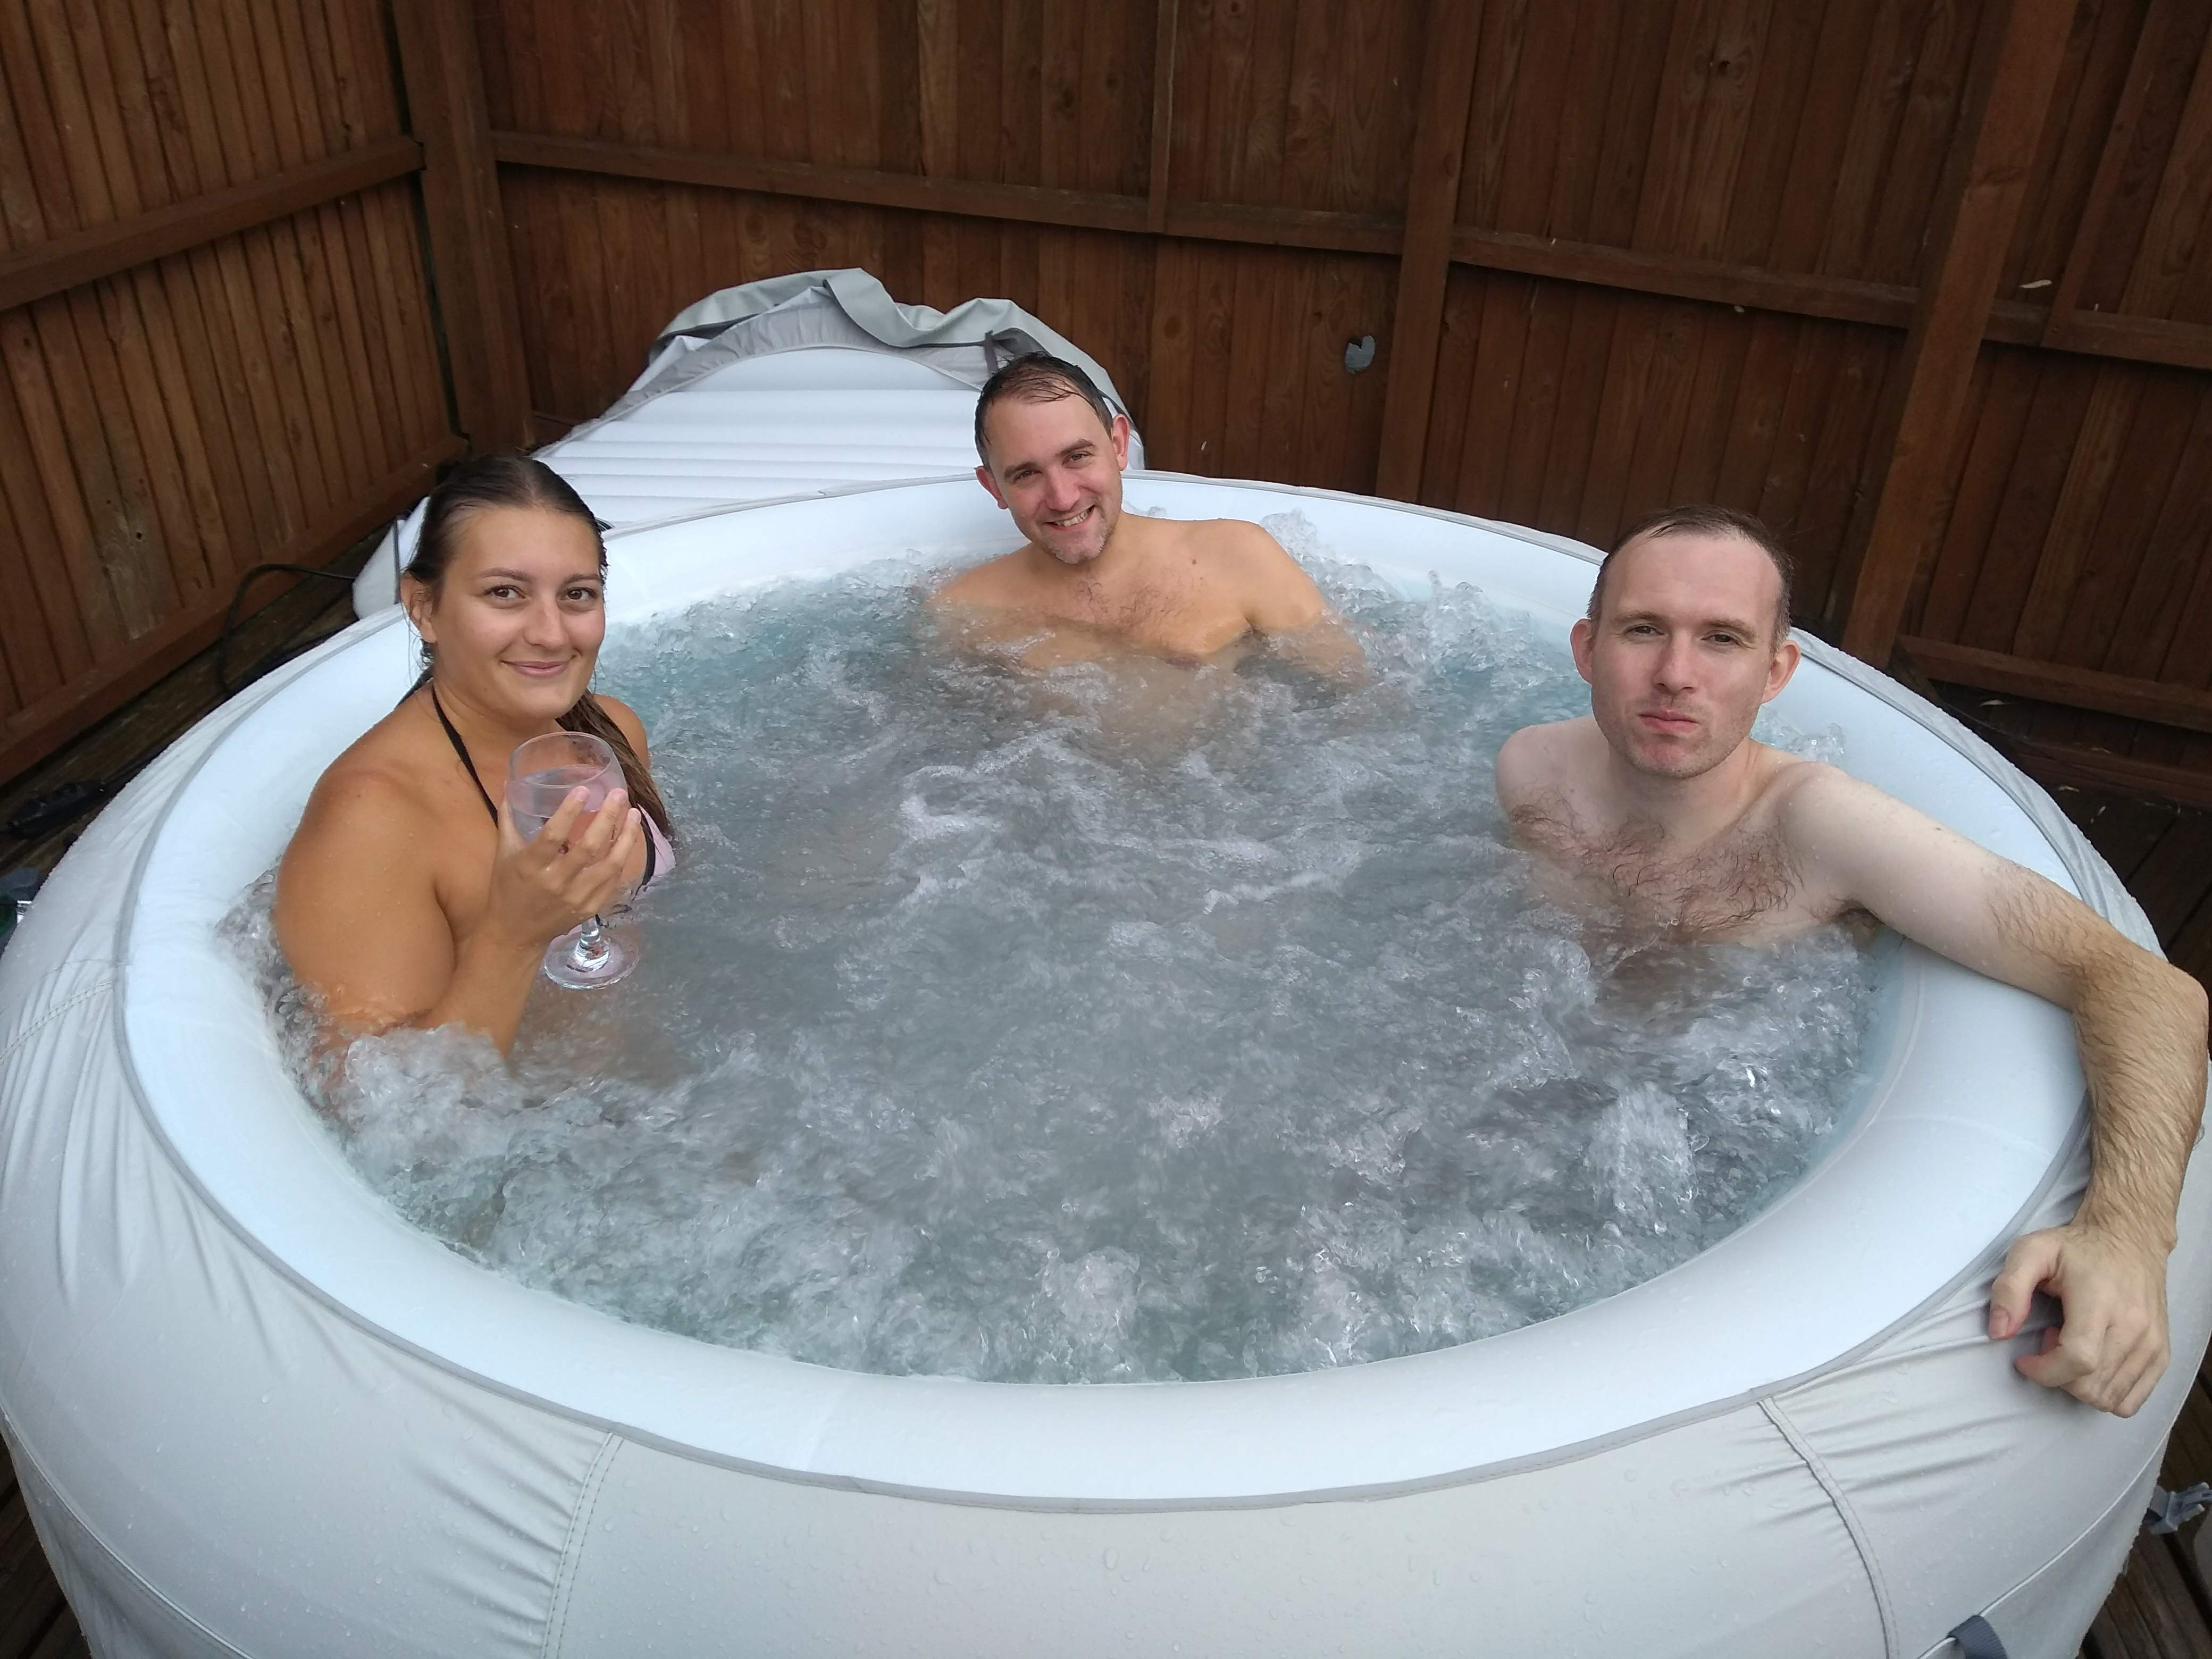 Lauren, Graeme and Greg fully in the hot tub